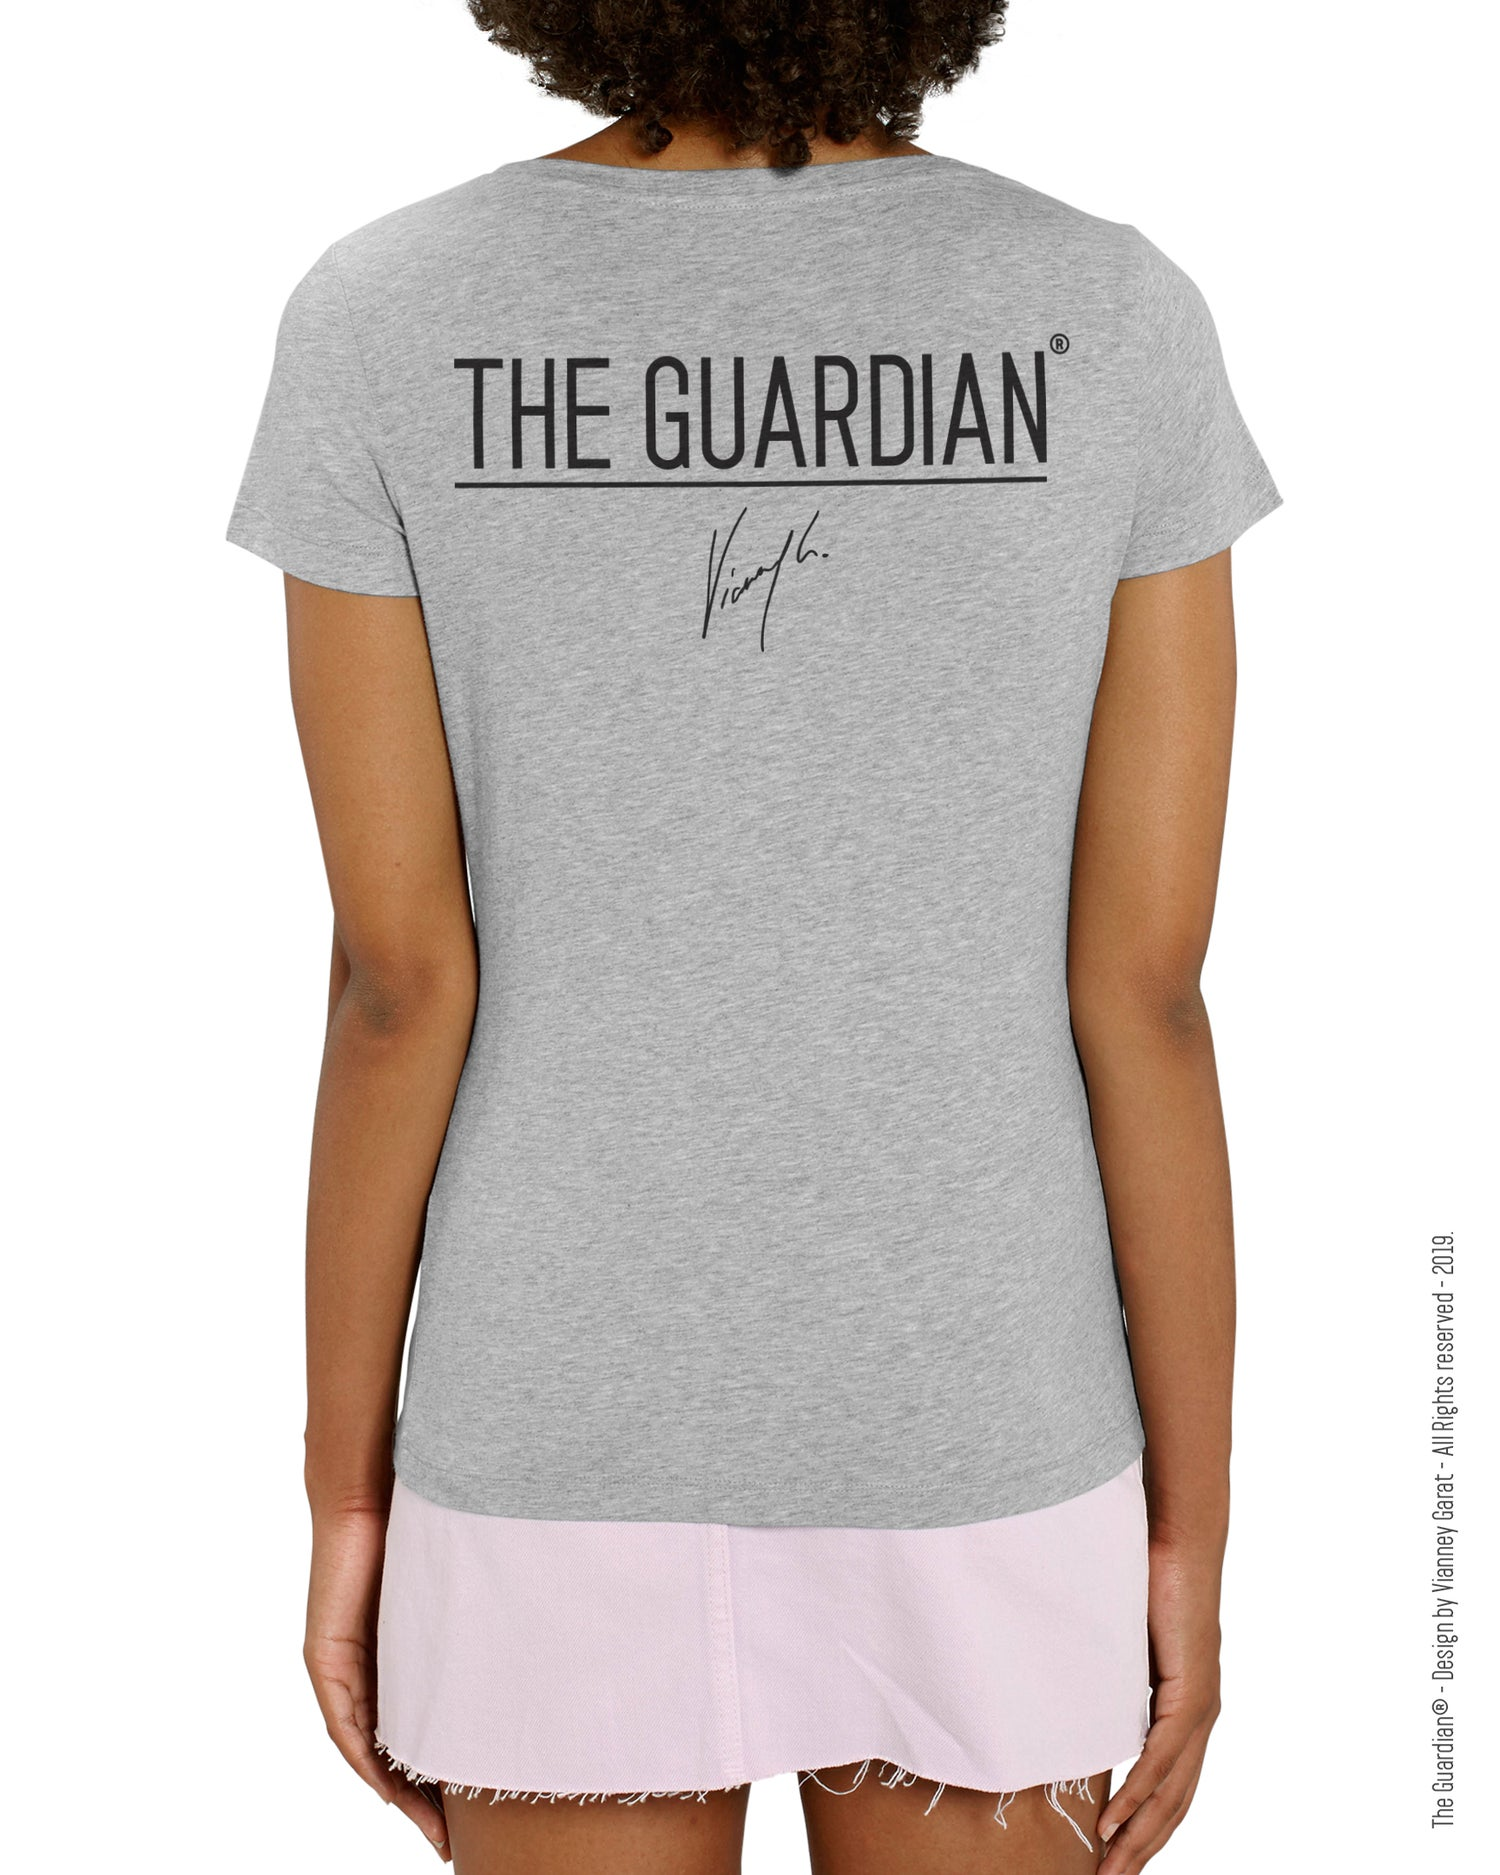 Image of T-SHIRT FEMME- THE GUARDIAN® - LIGHT GREY EDITION - Limited Edition